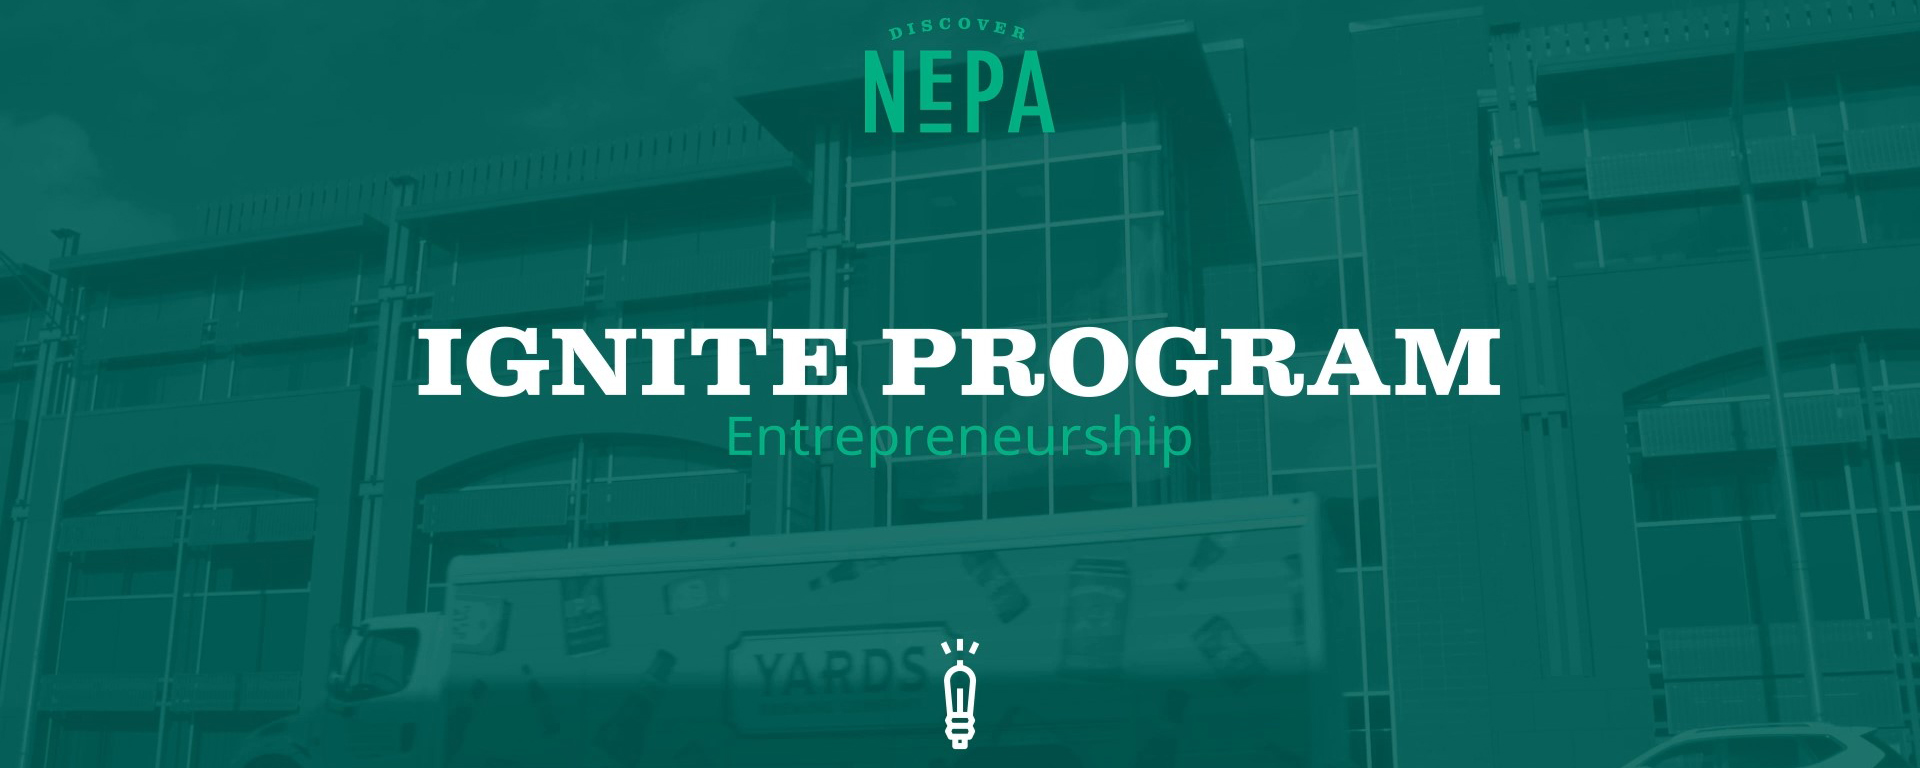 Our IGNITE Program Partners with DiscoverNEPA